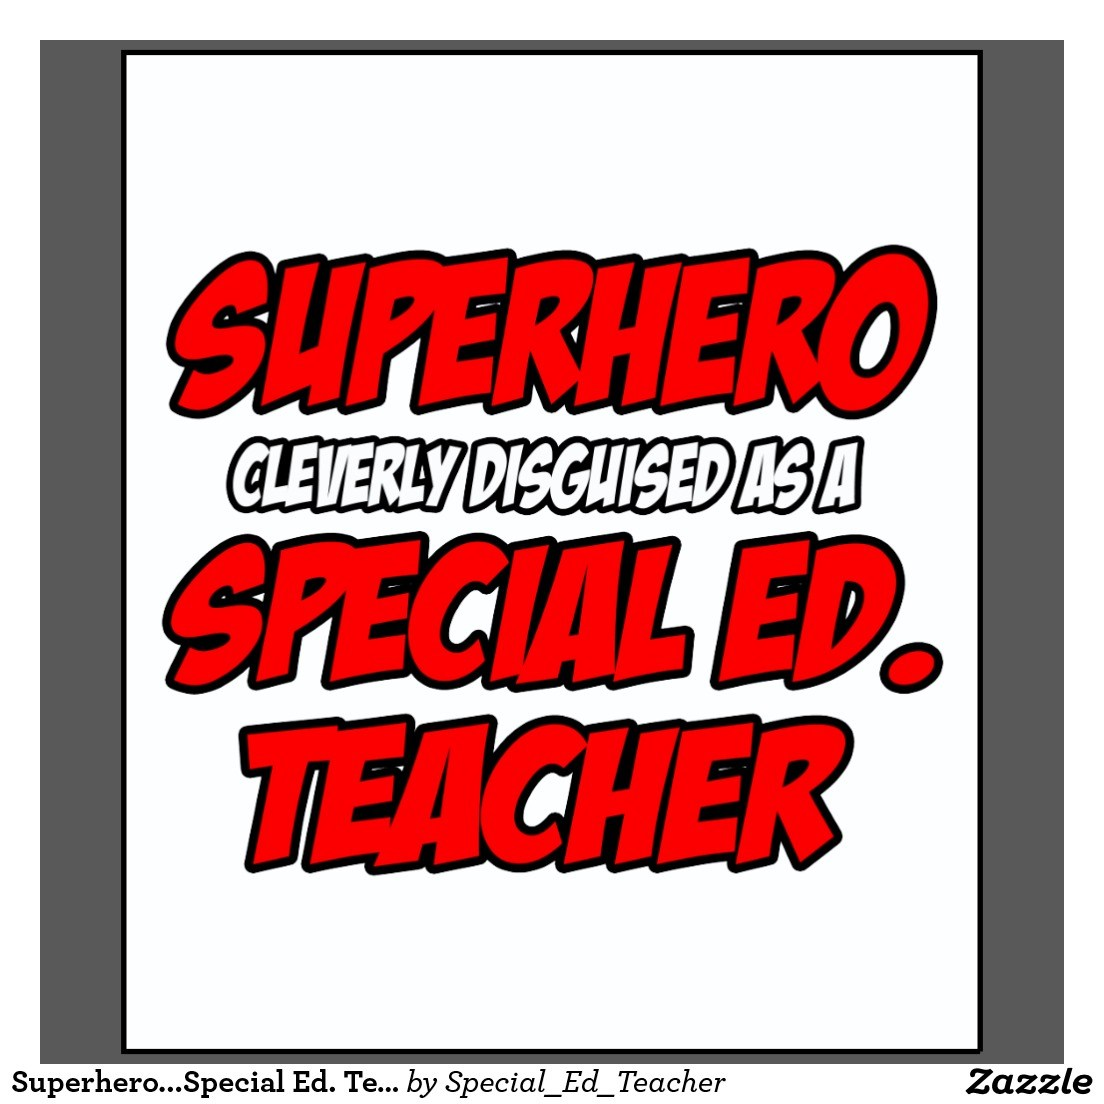 Special Ed Teacher